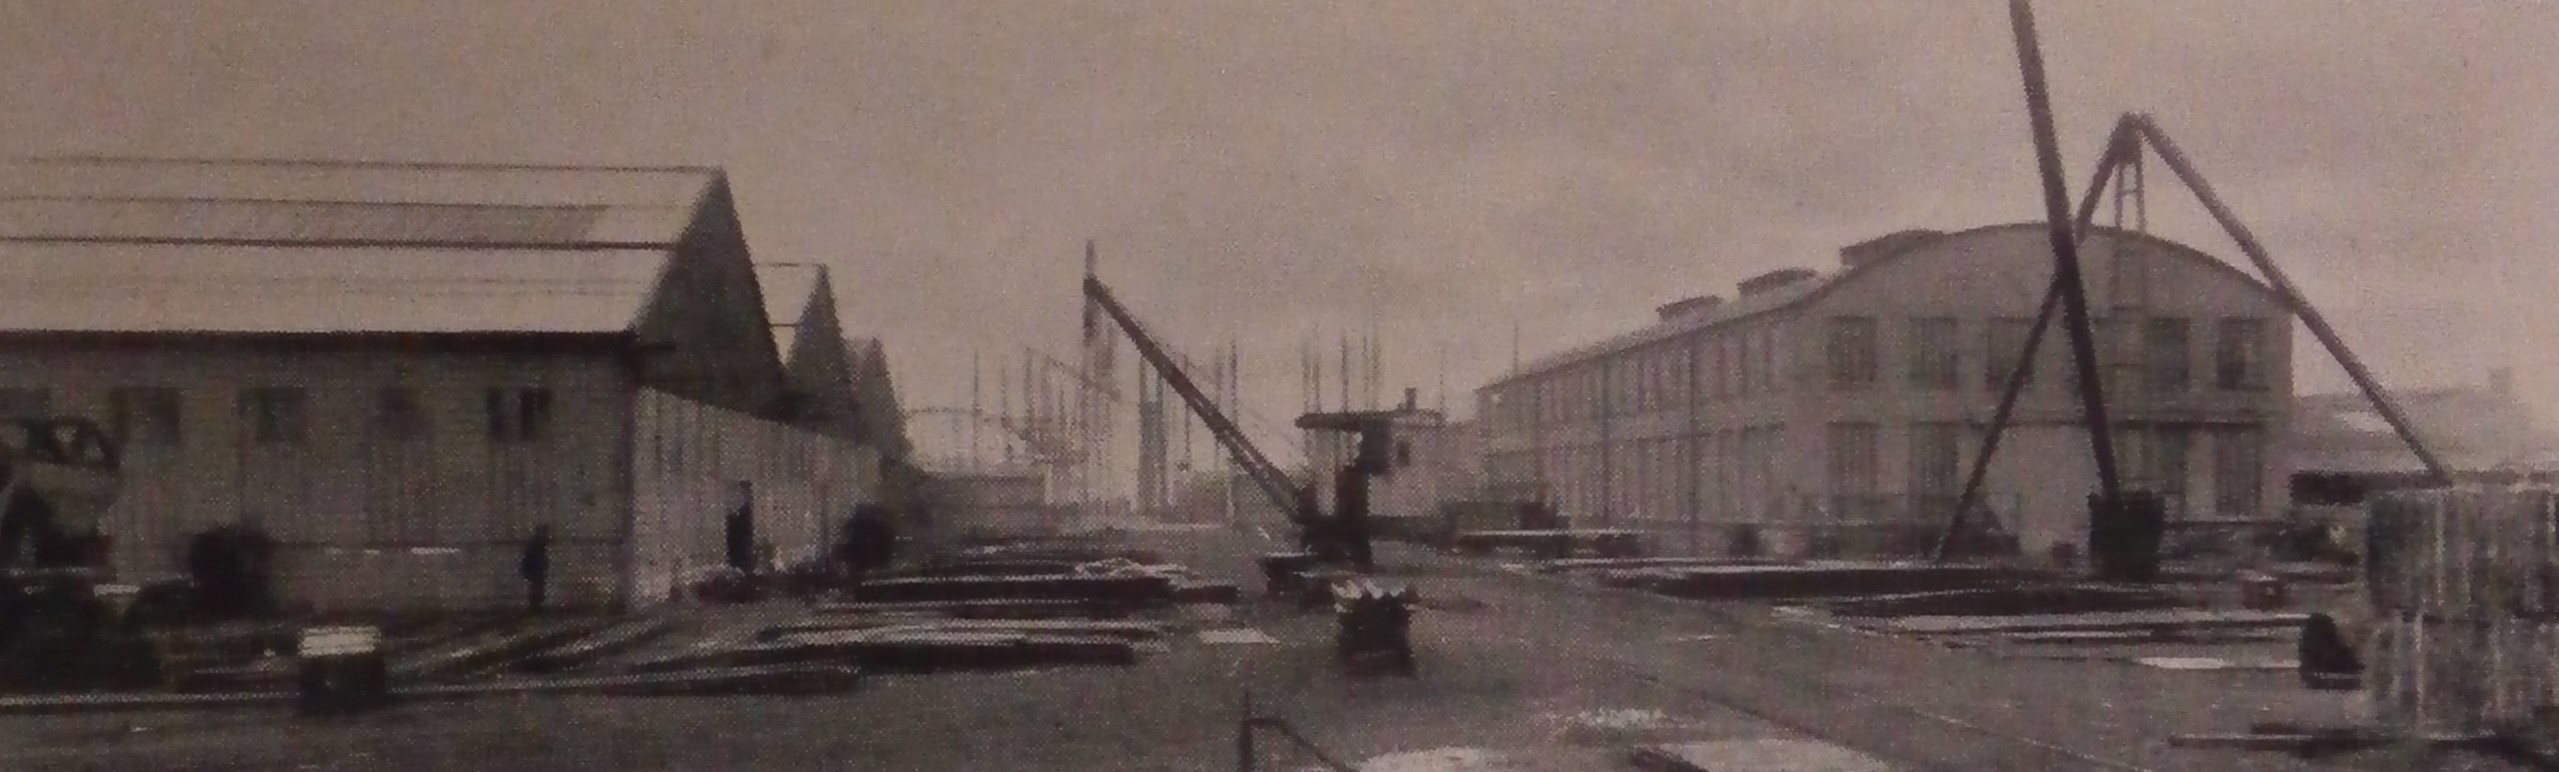 Shipyard - looking towards Alexandra Basin .